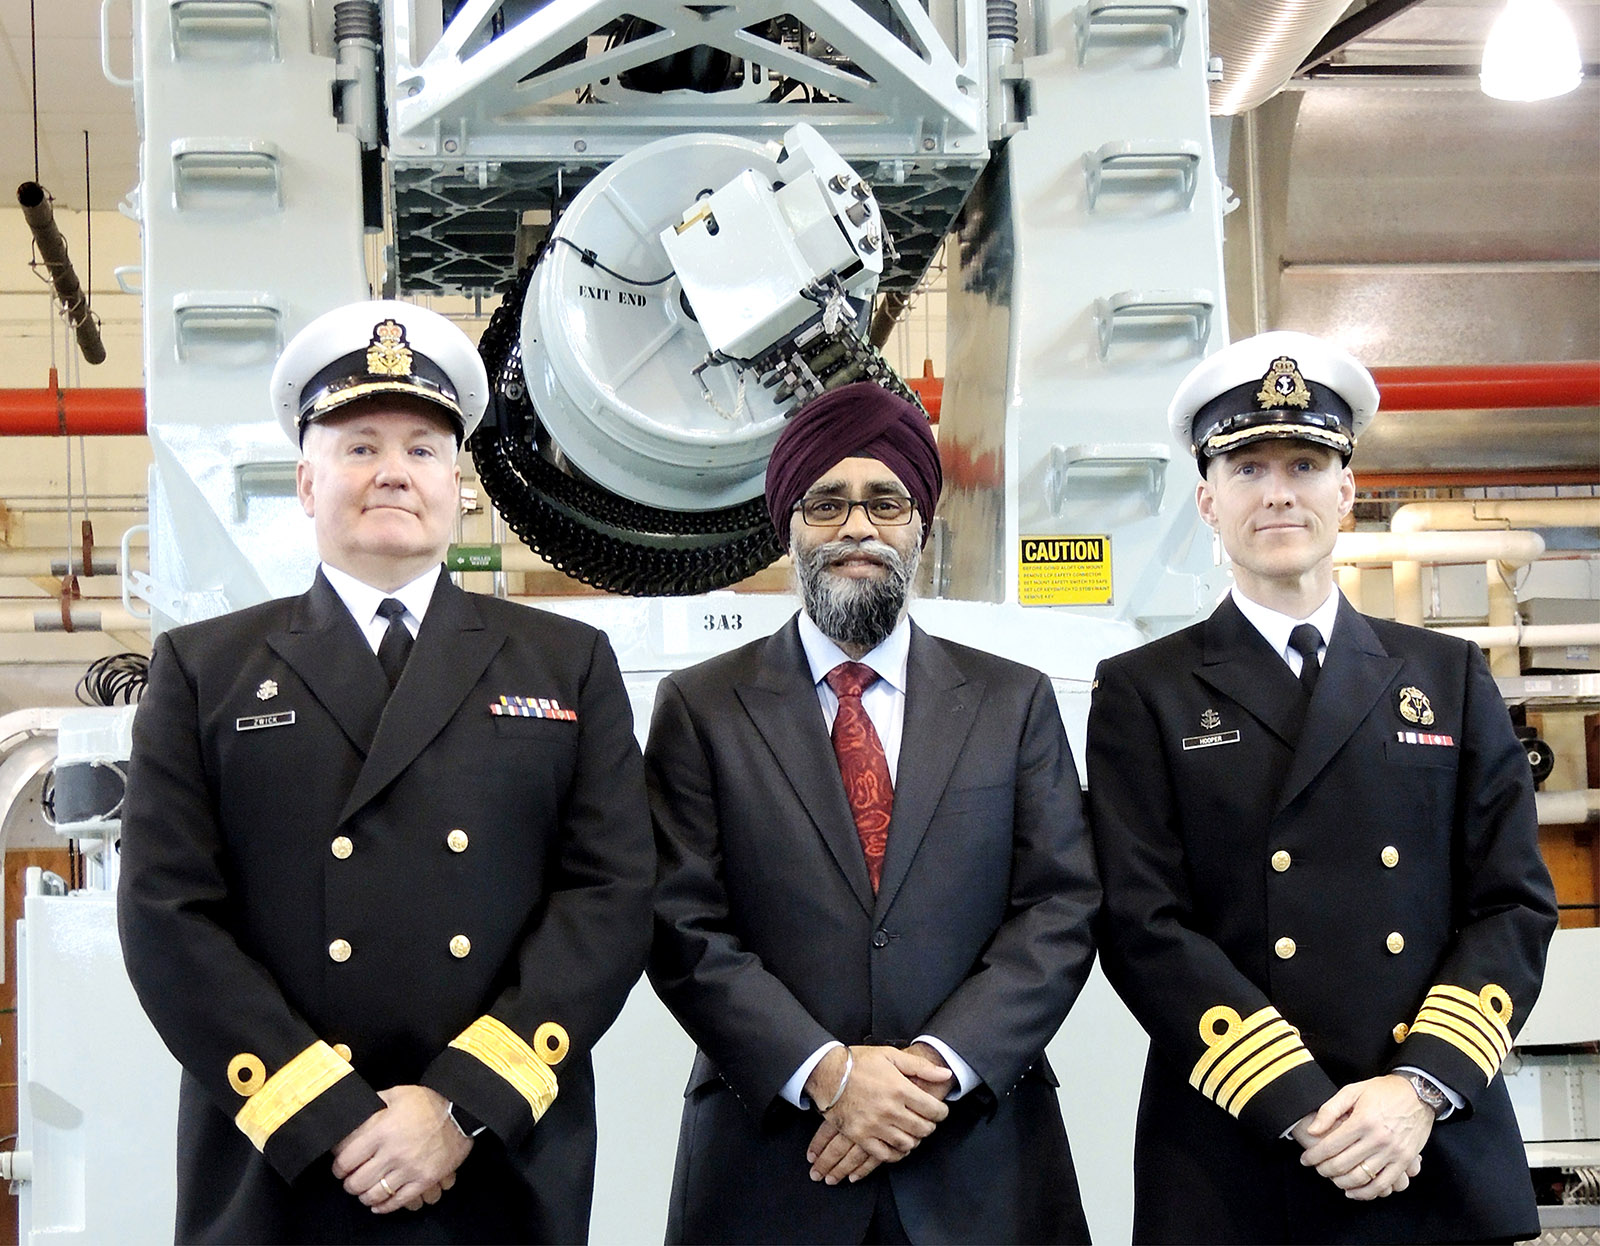 Minister of National Defence Harjit Sajjan, Commodore Jeff Zwick and Captain (Navy) Ed Hooper